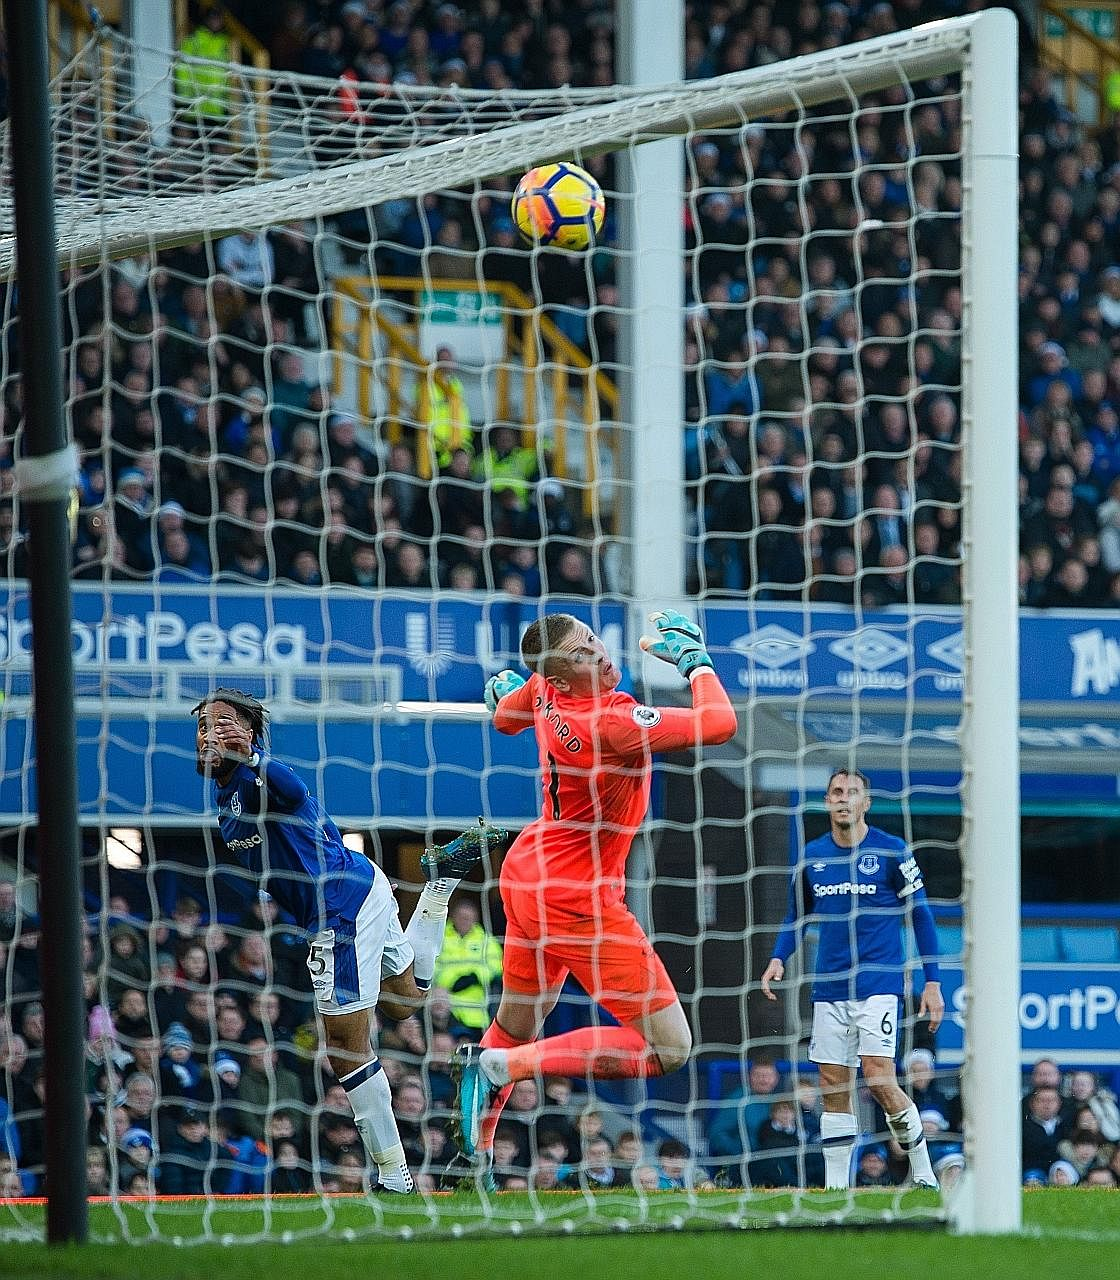 Everton centre-back Ashley Williams giving his team a fright by heading against his own crossbar in an attempt to clear the ball in the second half on Saturday. The Toffees shut up shop to keep out a toothless Chelsea side missing their No. 1 striker